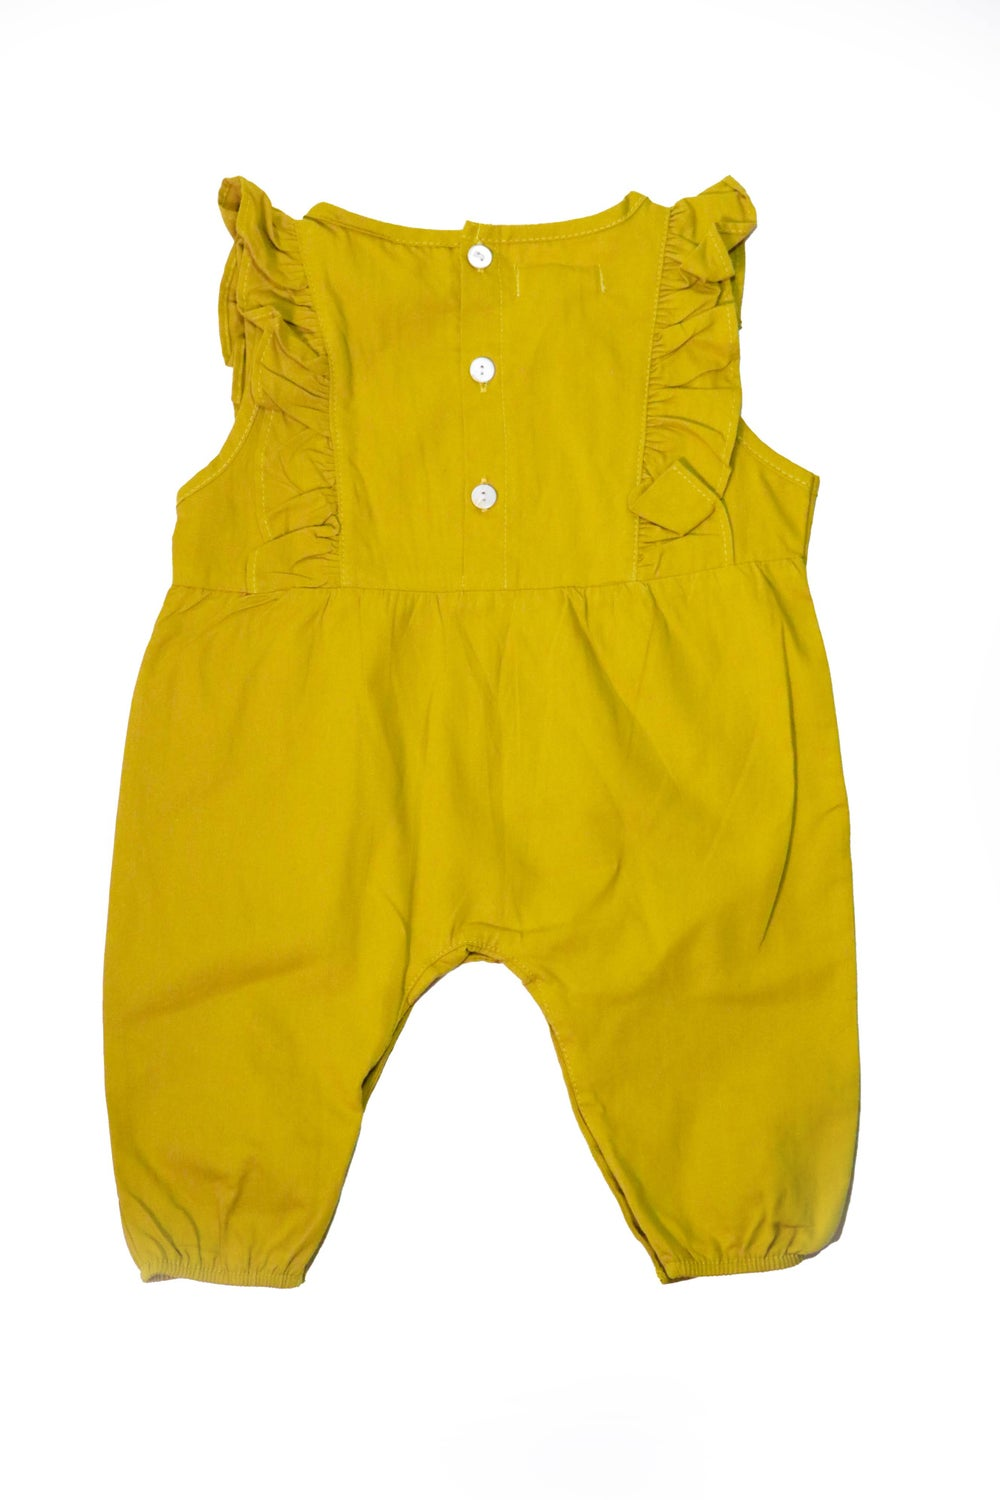 You Make My Day Jumpsuit